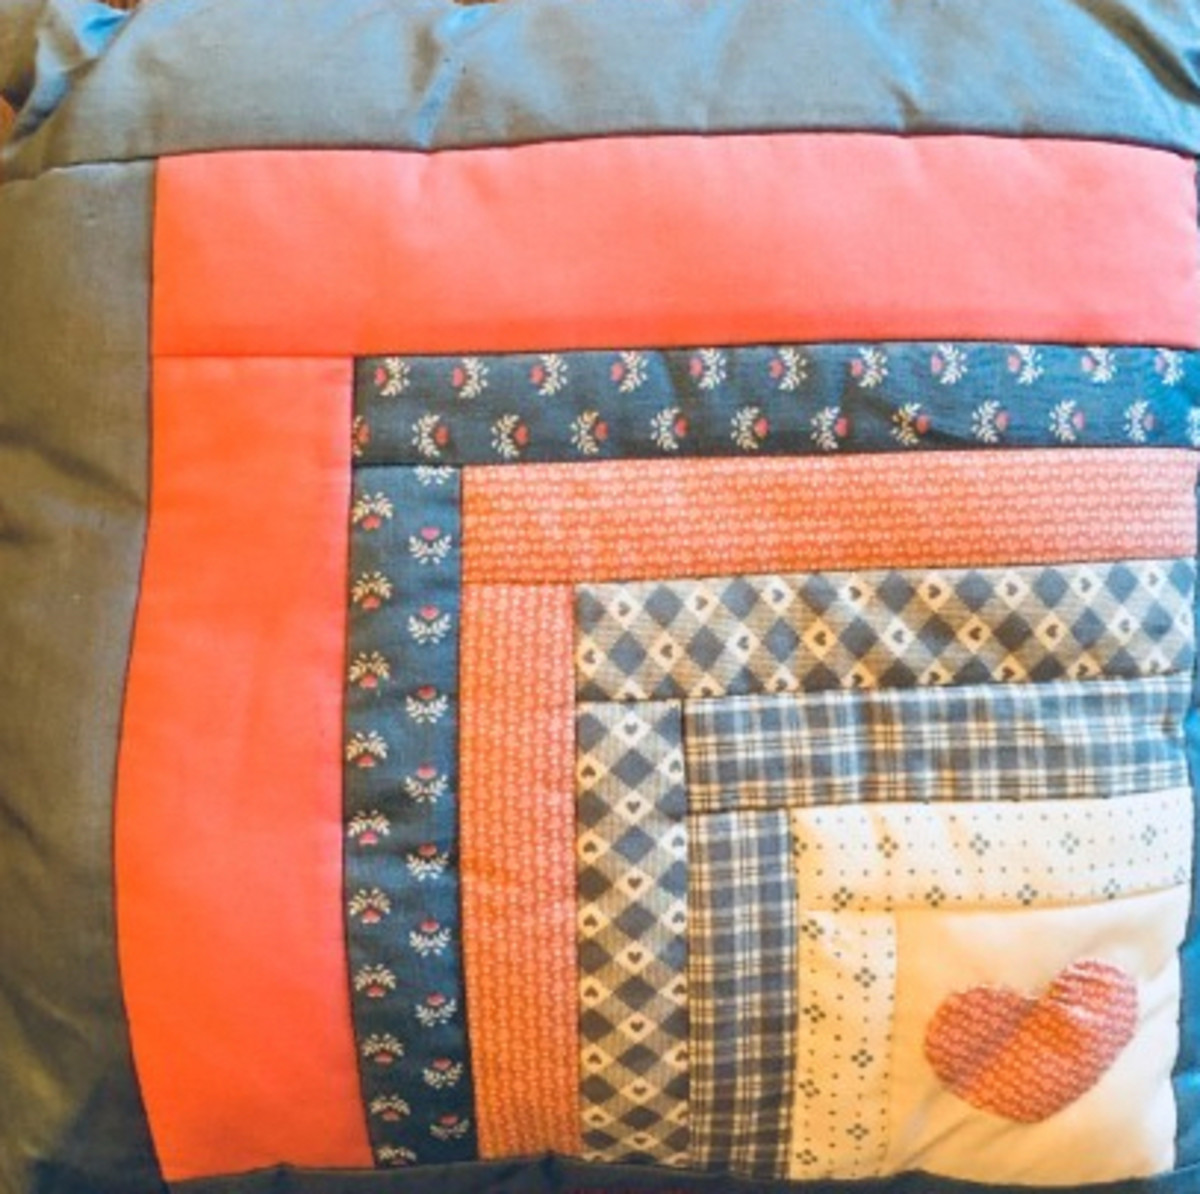 The finished pillow.